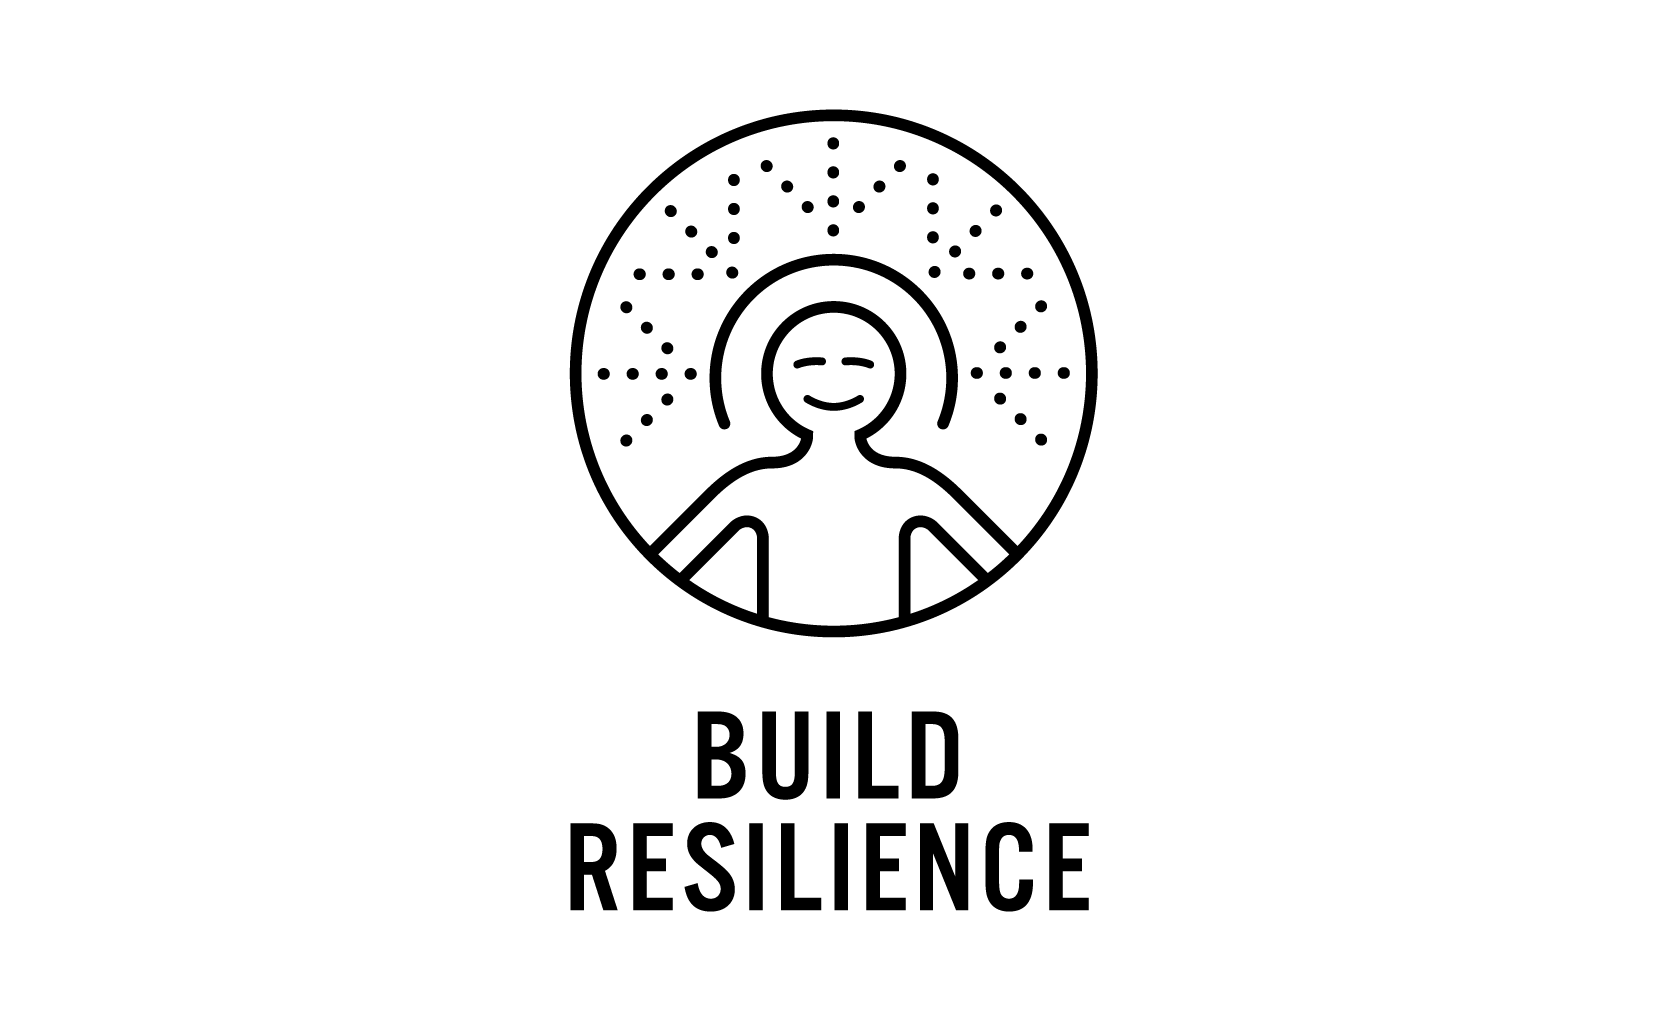 Emotional resilience means bouncing back from a challenge, staying calm and cool when everyone else is freaking out. Sound useful?